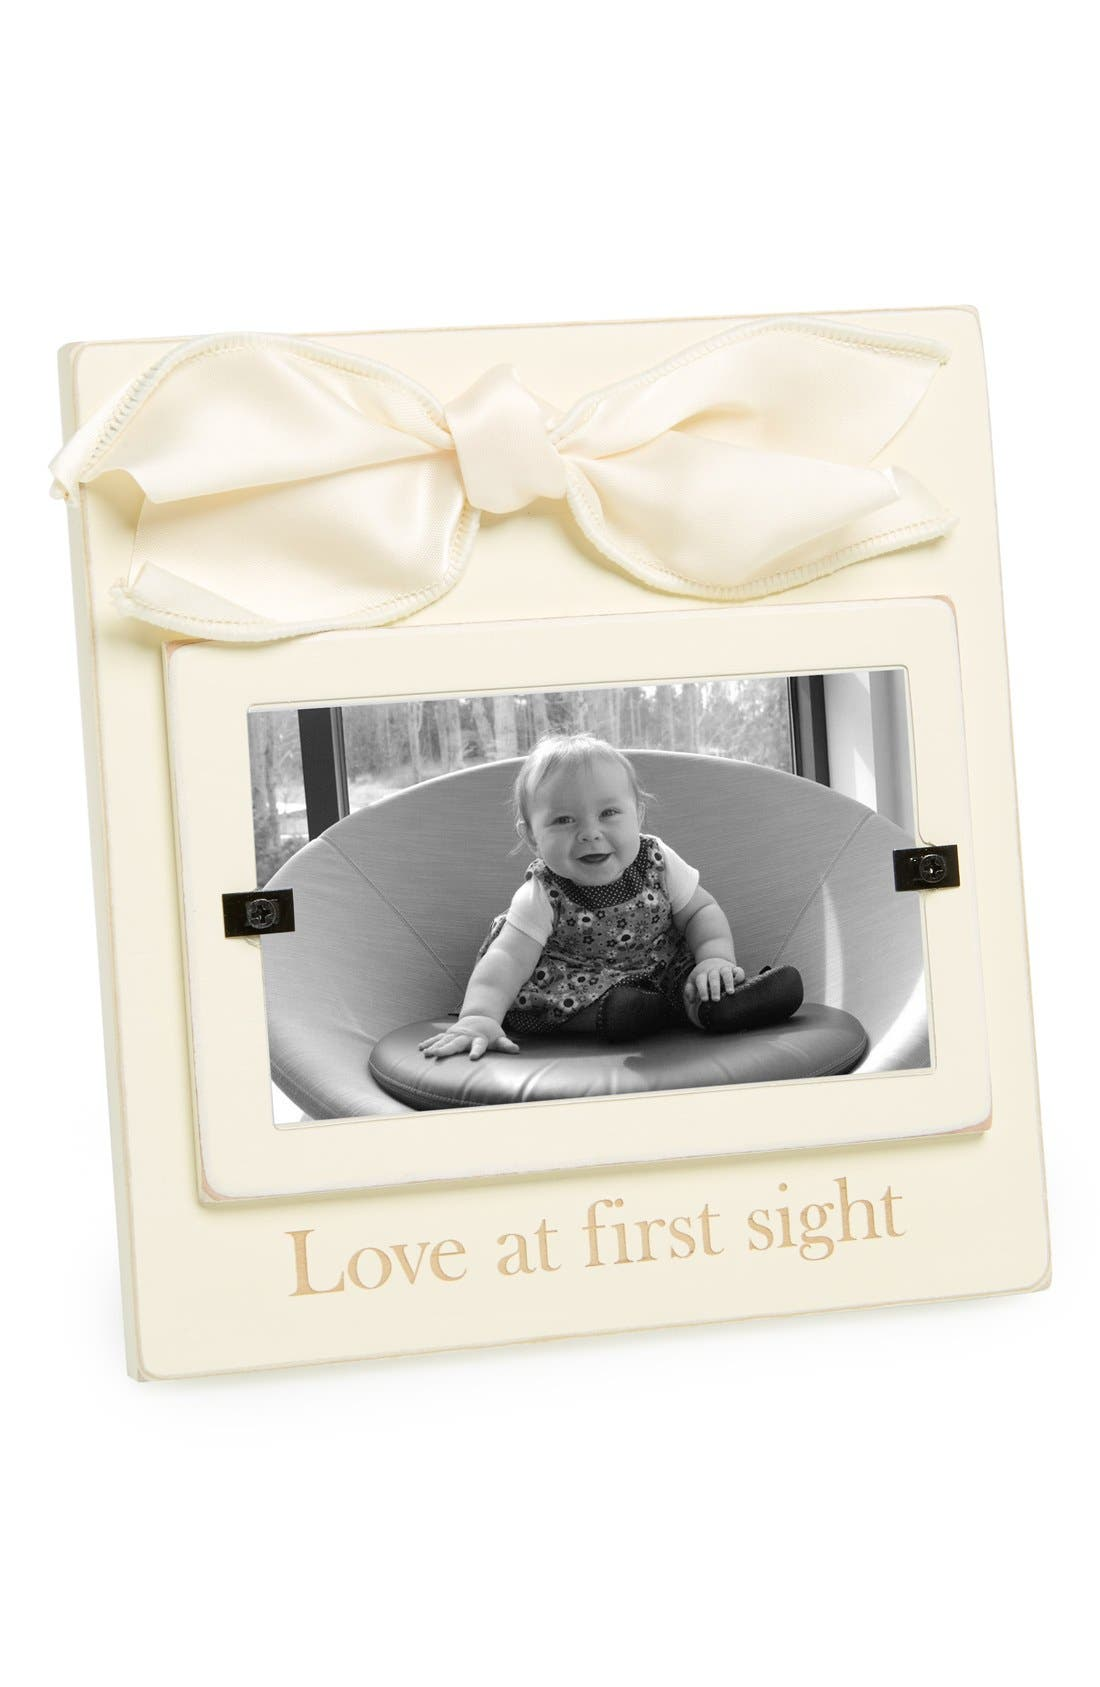 Alternate Image 1 Selected - Mud Pie 'Love At First Sight' Wooden Picture Frame (3x5)